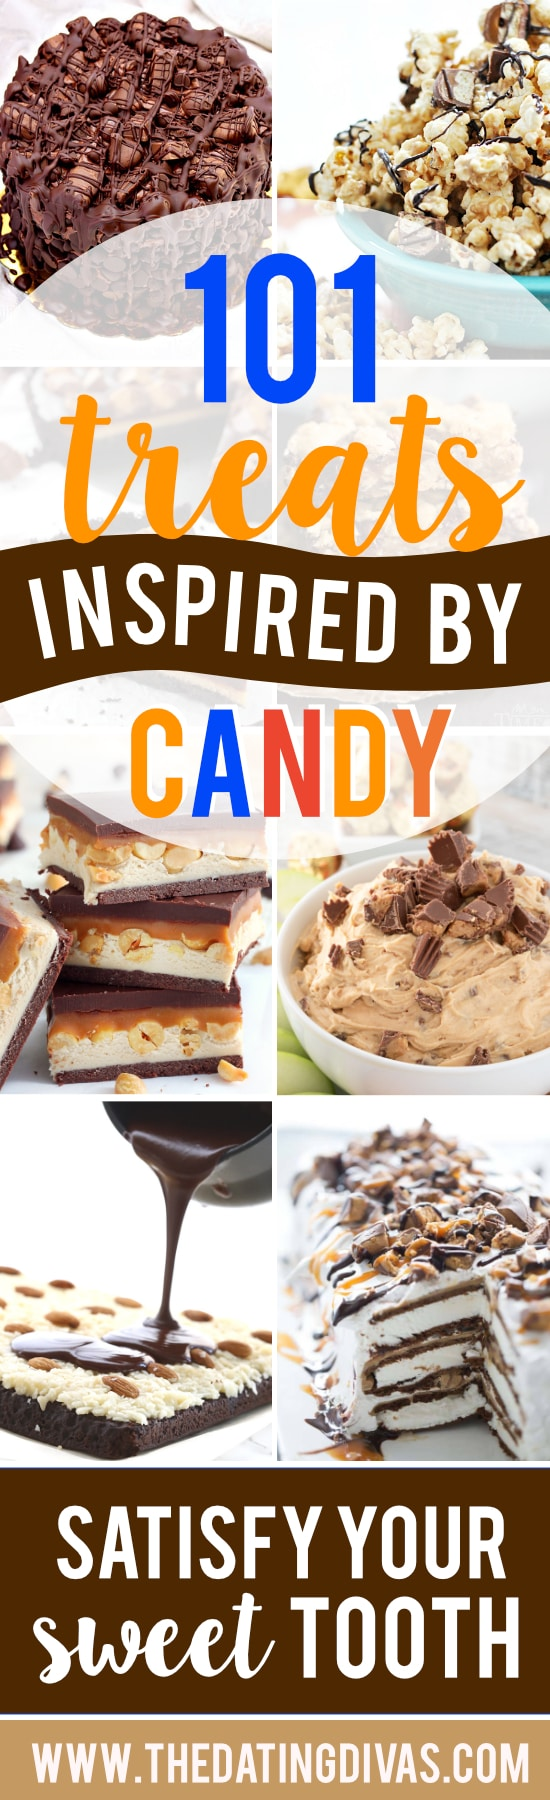 101 Treats Inspired by Candy